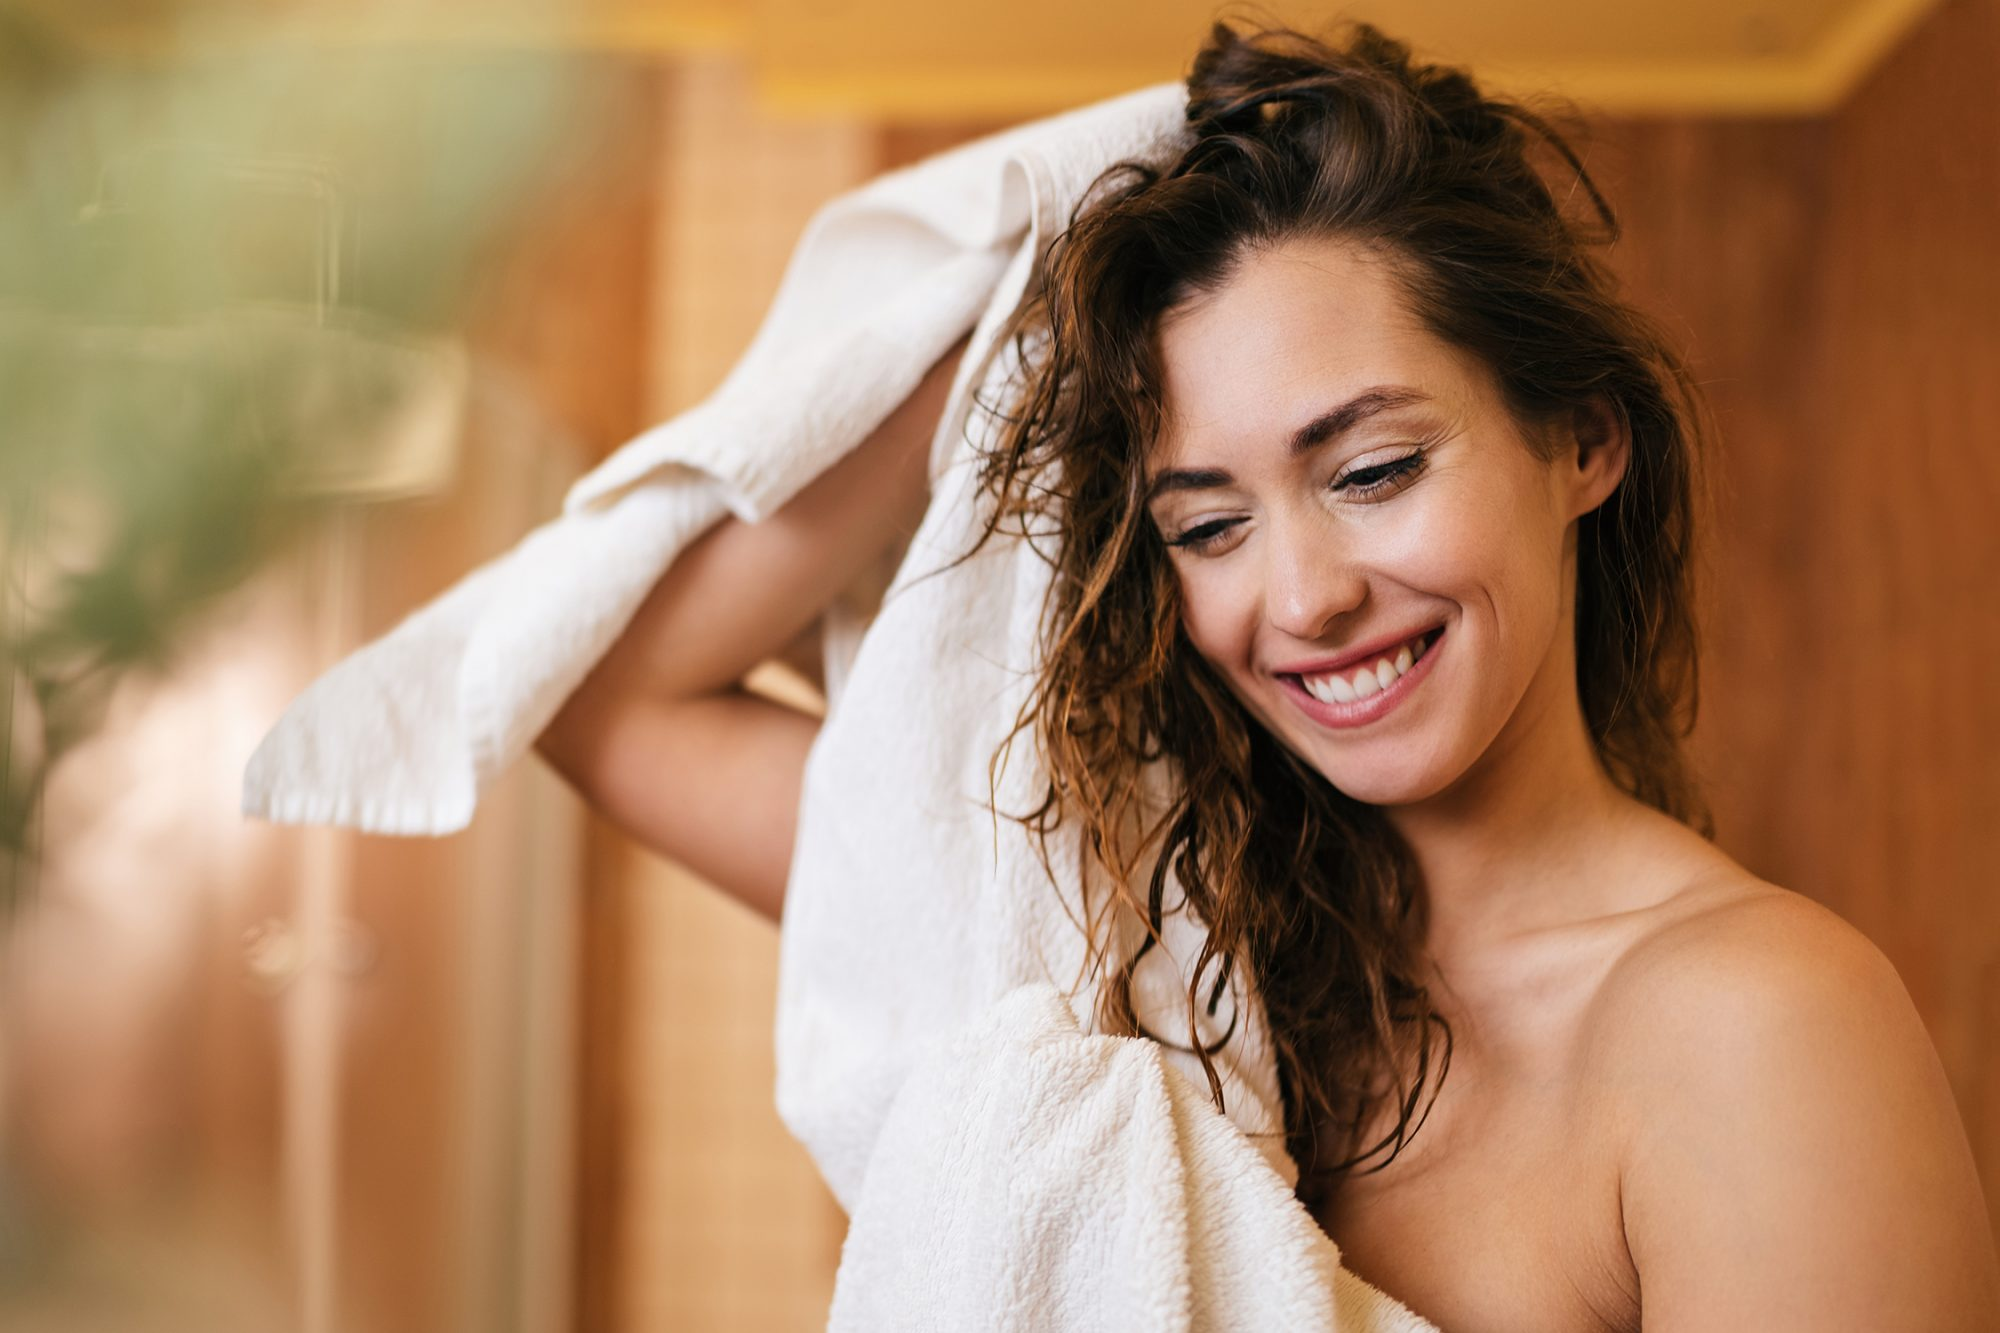 Beautiful happy woman drying her hair with a towel in the bathroom.